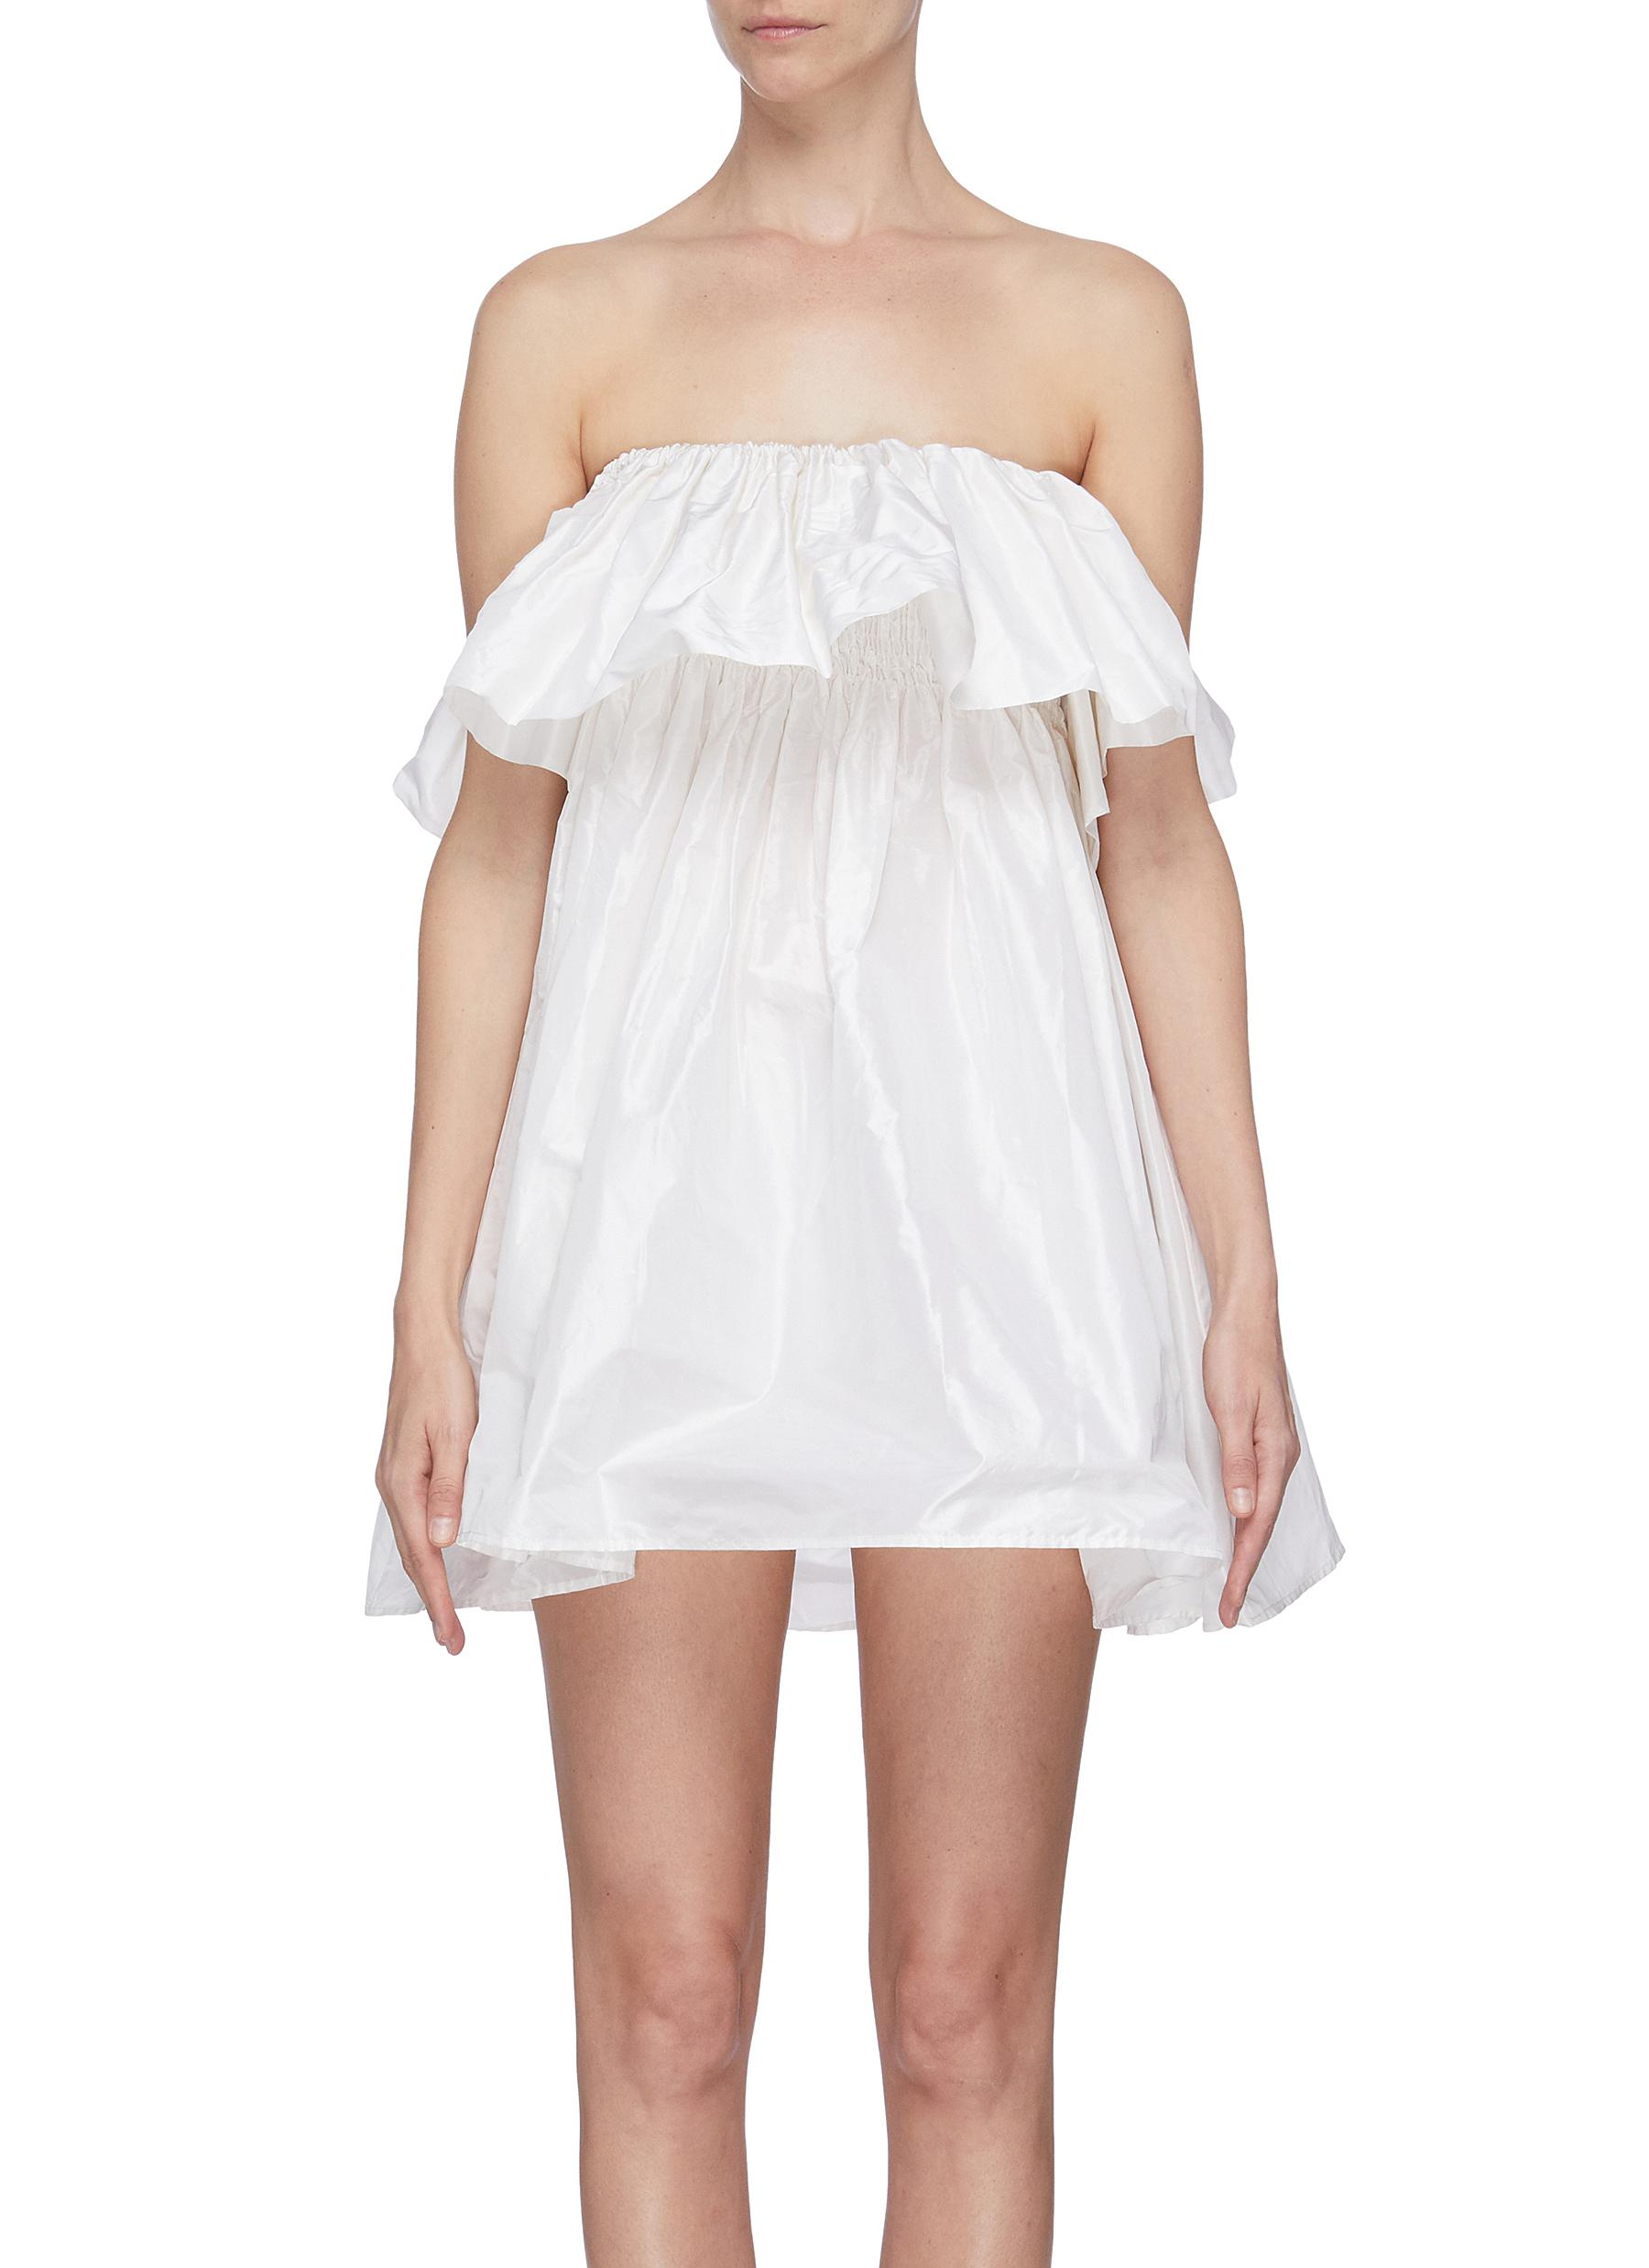 shop Leal Daccarett 'Perlas Blancas' ruffle sleeveless dress online